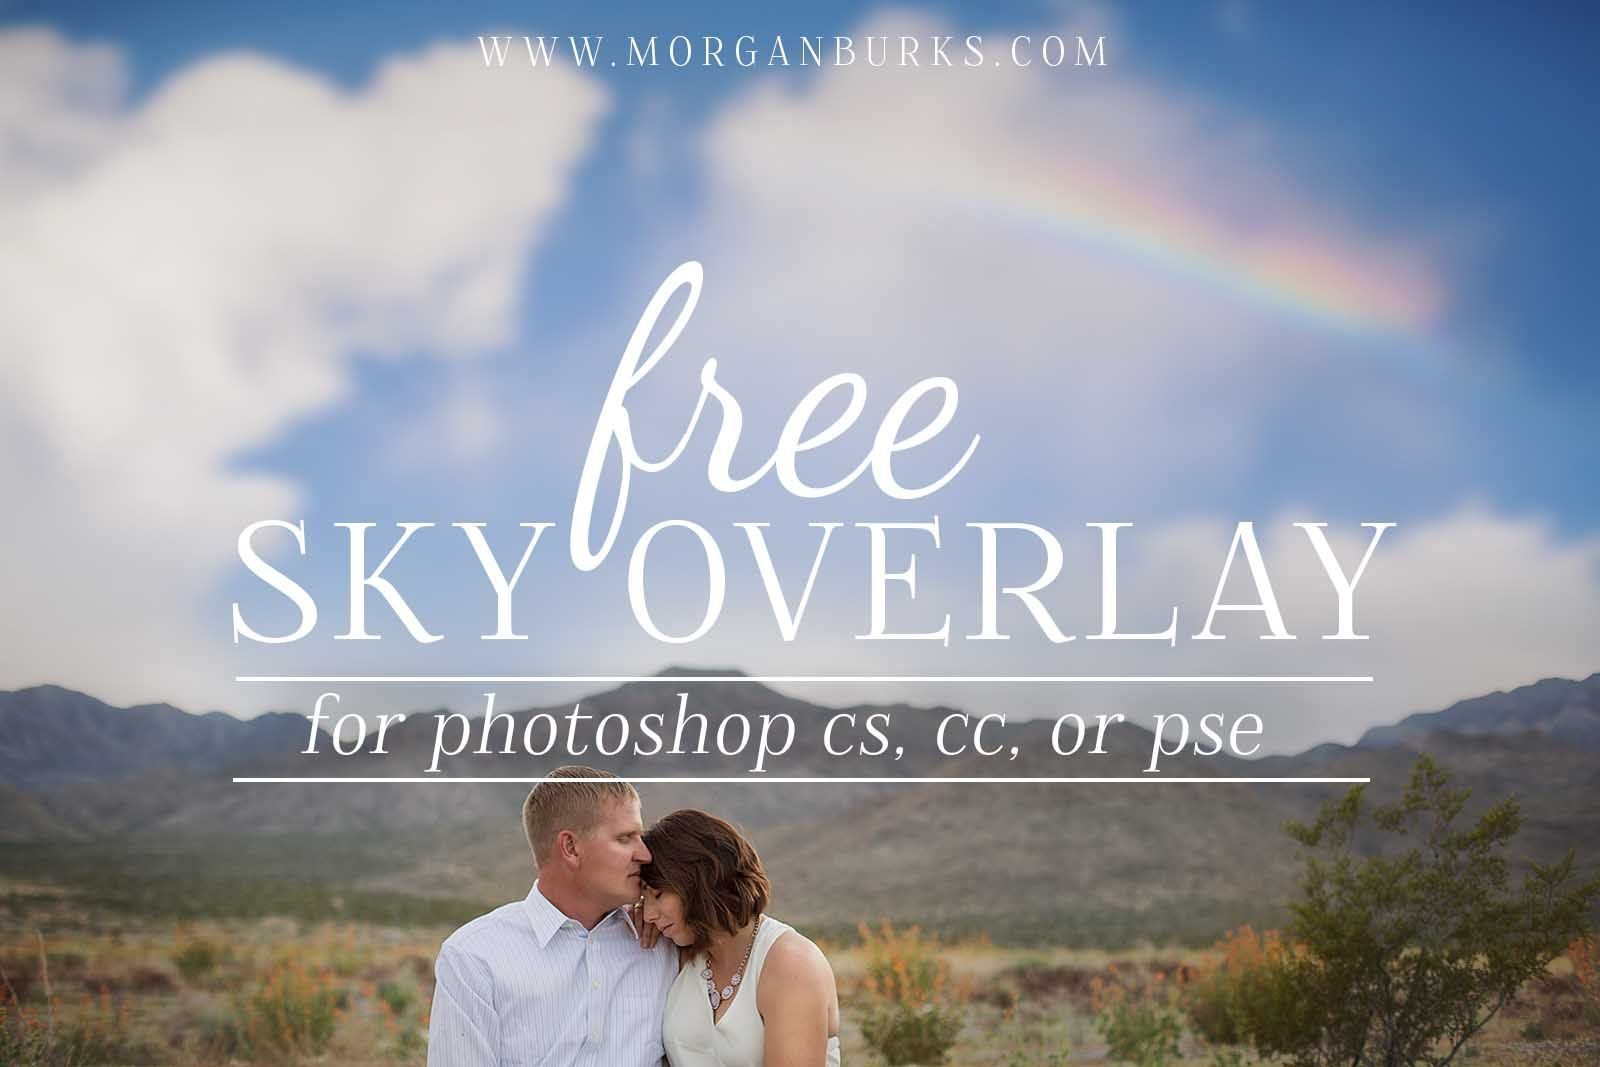 Free Sky Overlay For Photoshop And Elements Photo